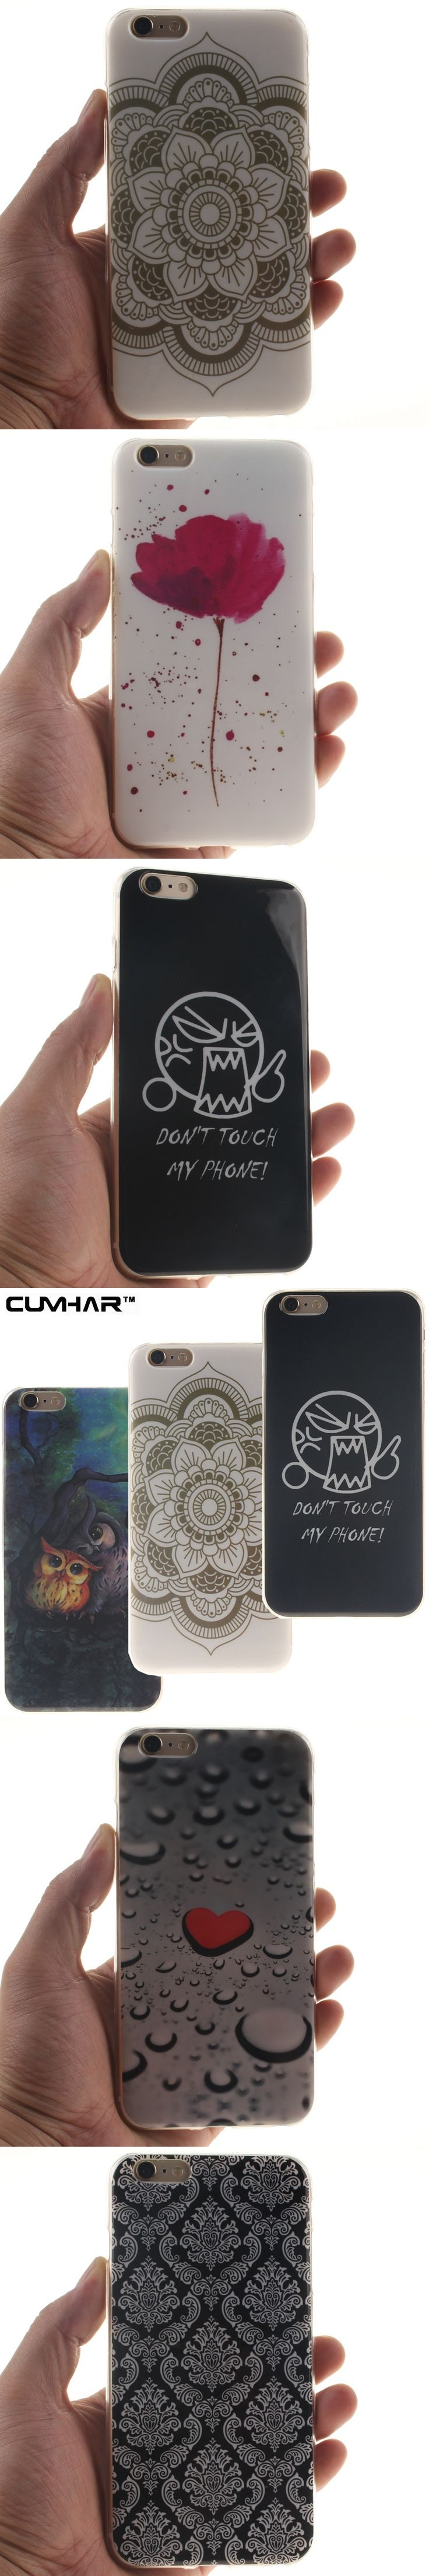 Funny Emoji Totems drop water Love Heart Lion Owl Soft TPU Phone Back Case Cover for iPhone 5S 5 SE 6 6S 7 Plus 7Plus